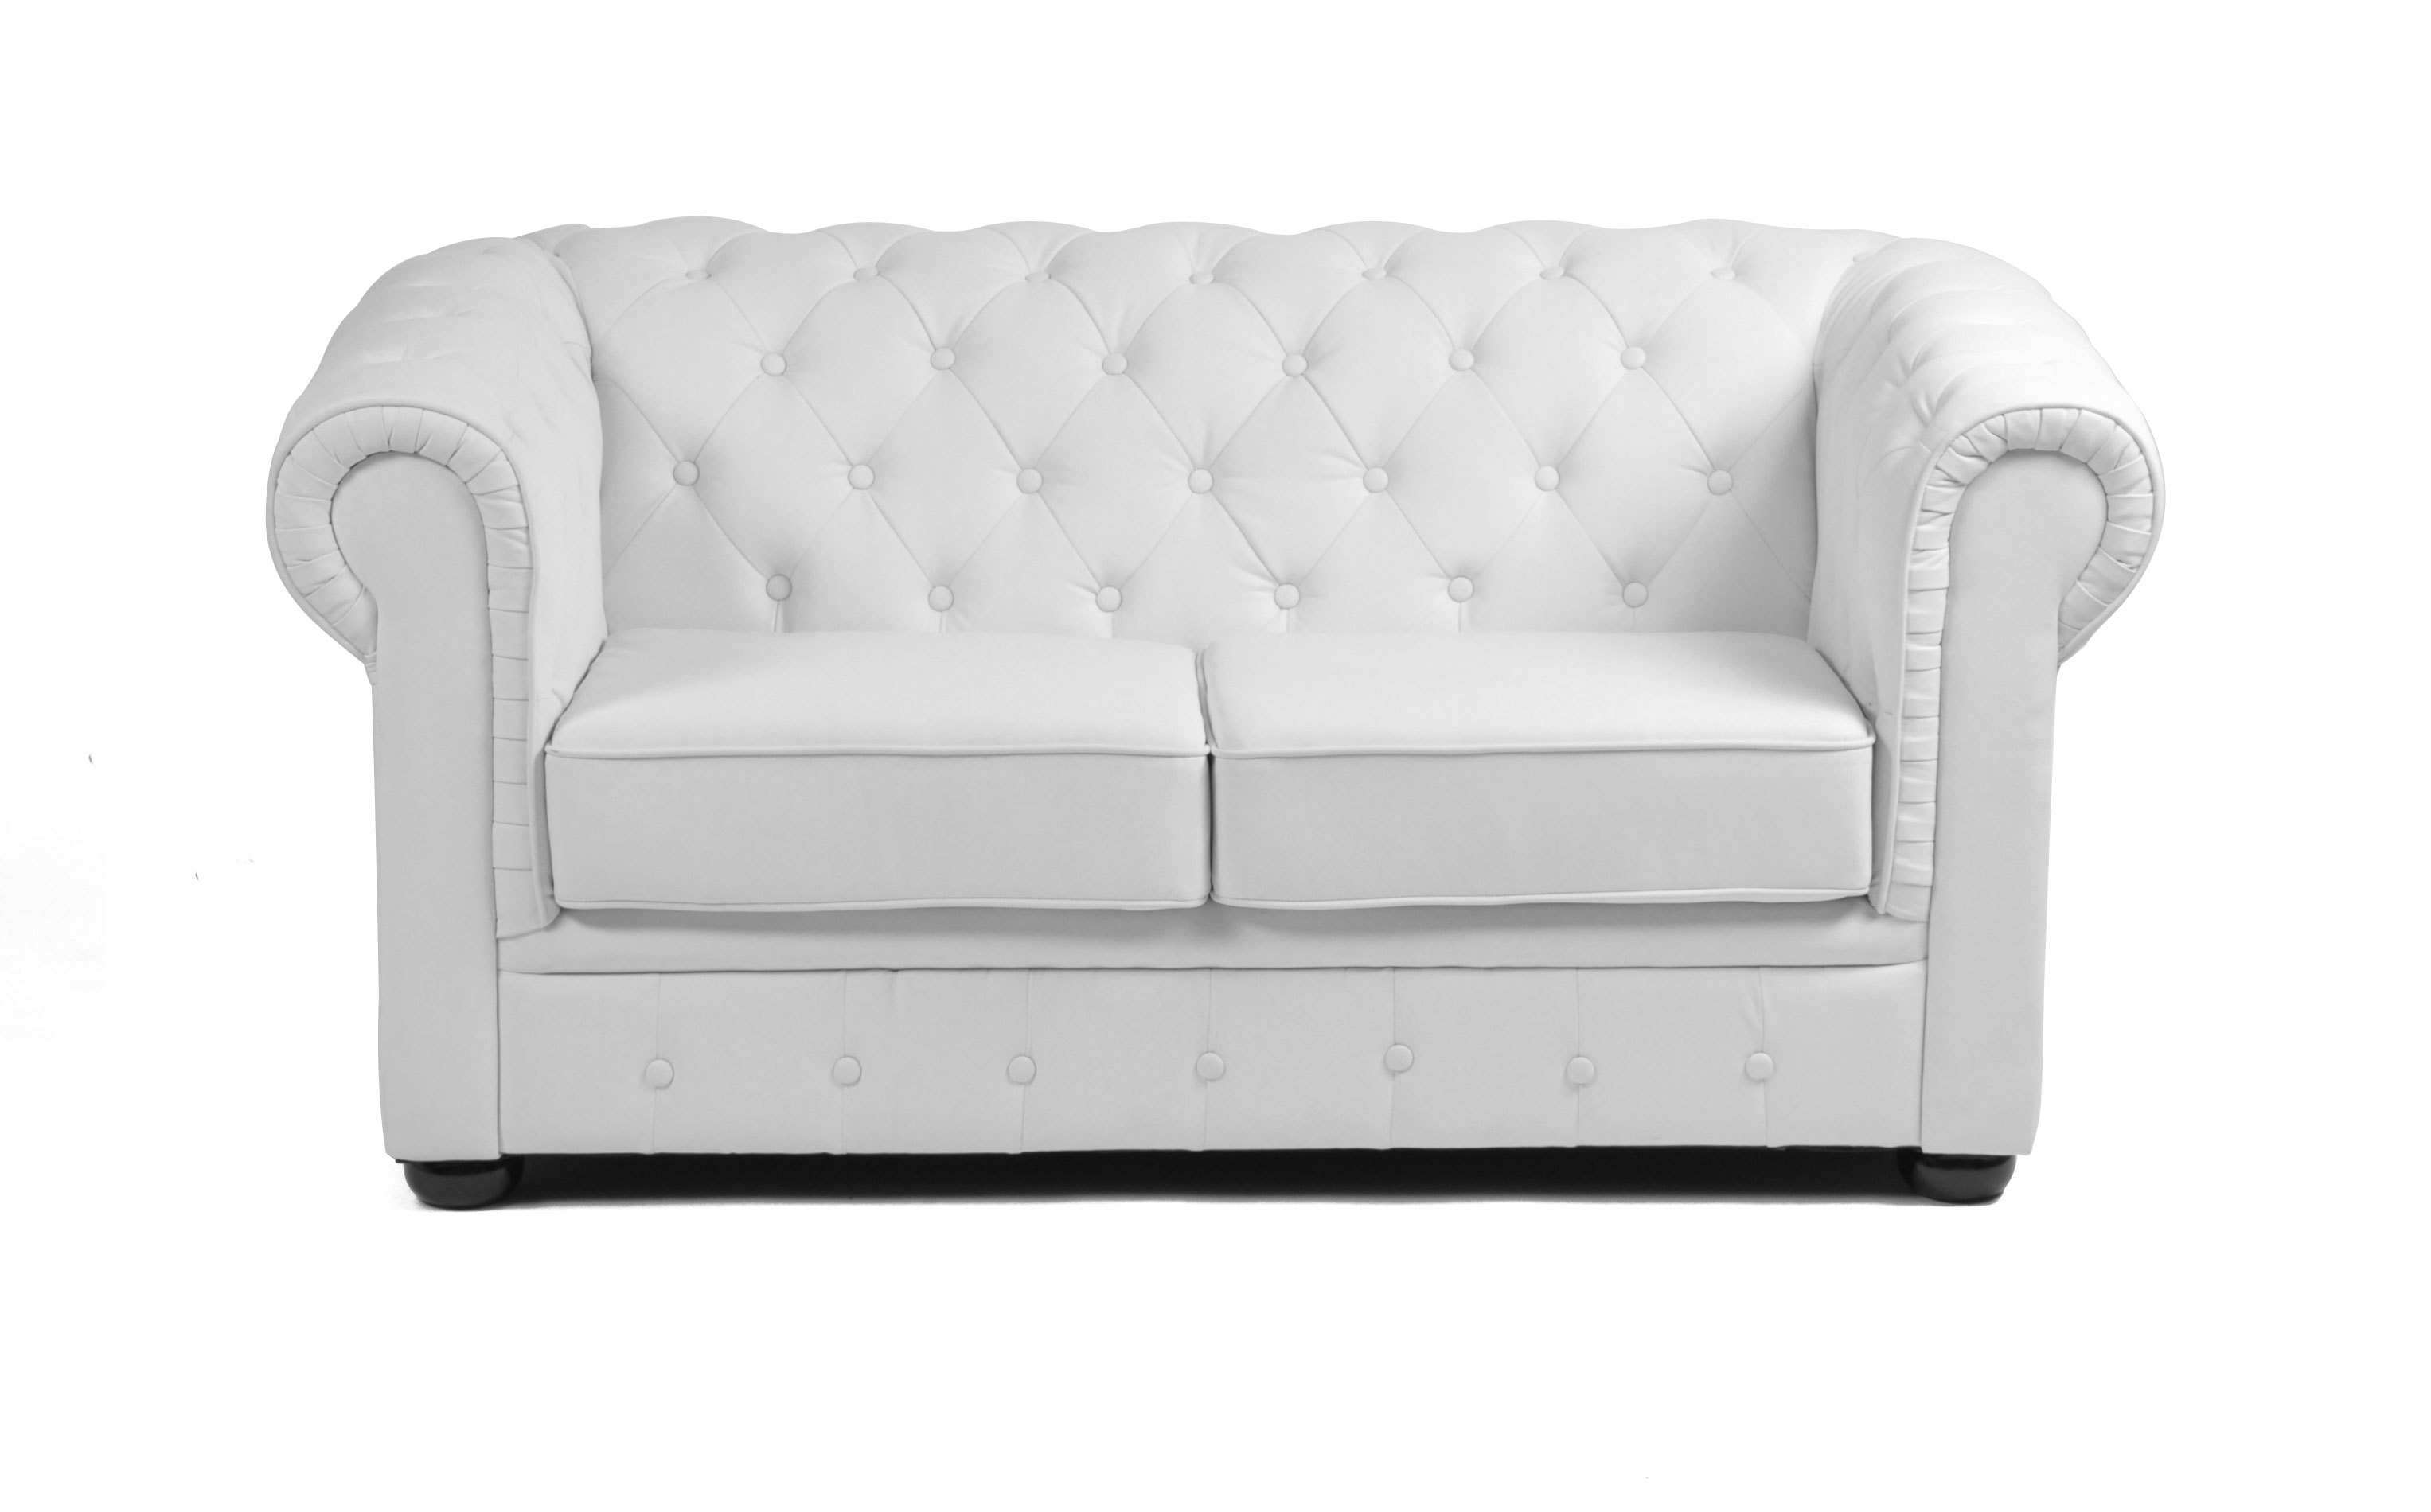 White chesterfield chair - 2 Seater Chesterfield Sofa White